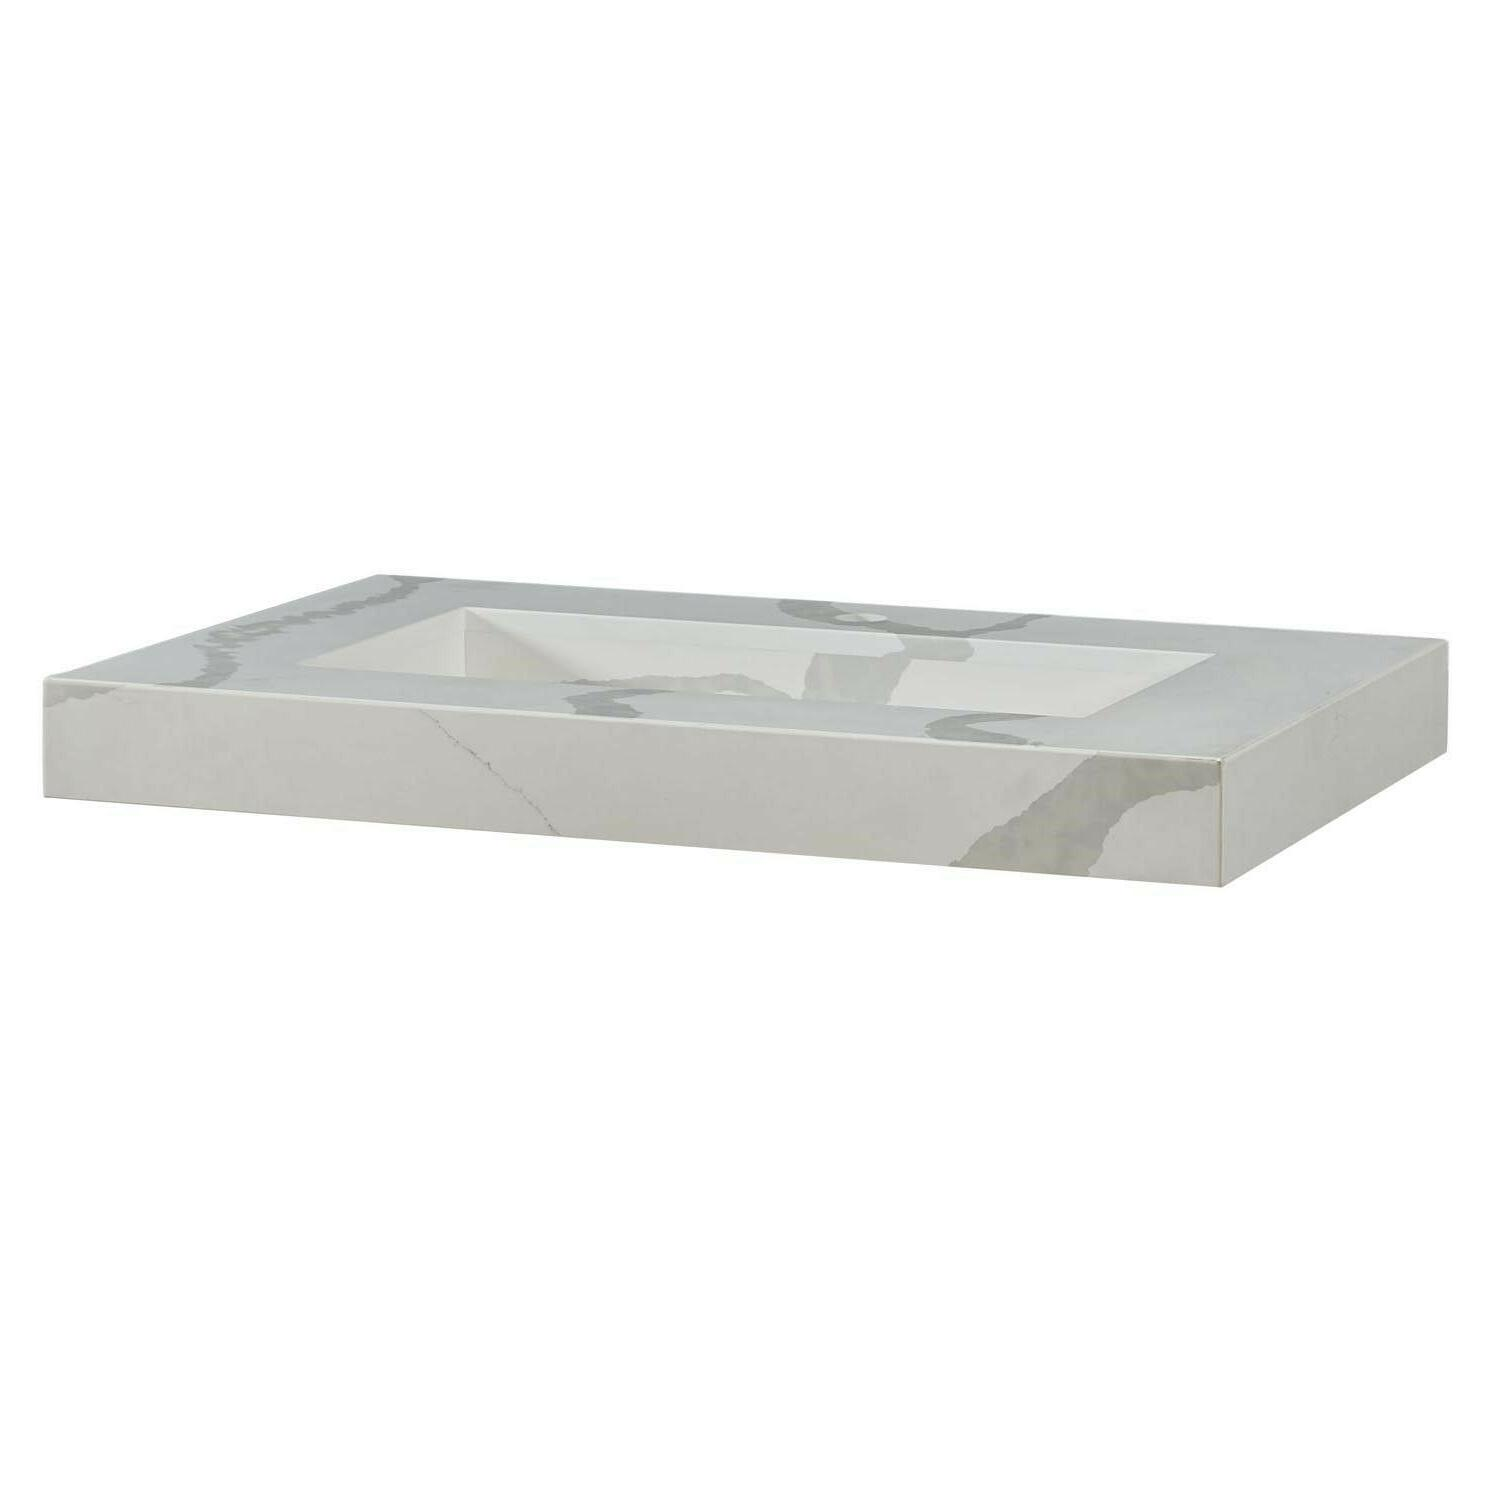 Bathroom Vanity Calacatta White Quartz w/ Integrated Sink